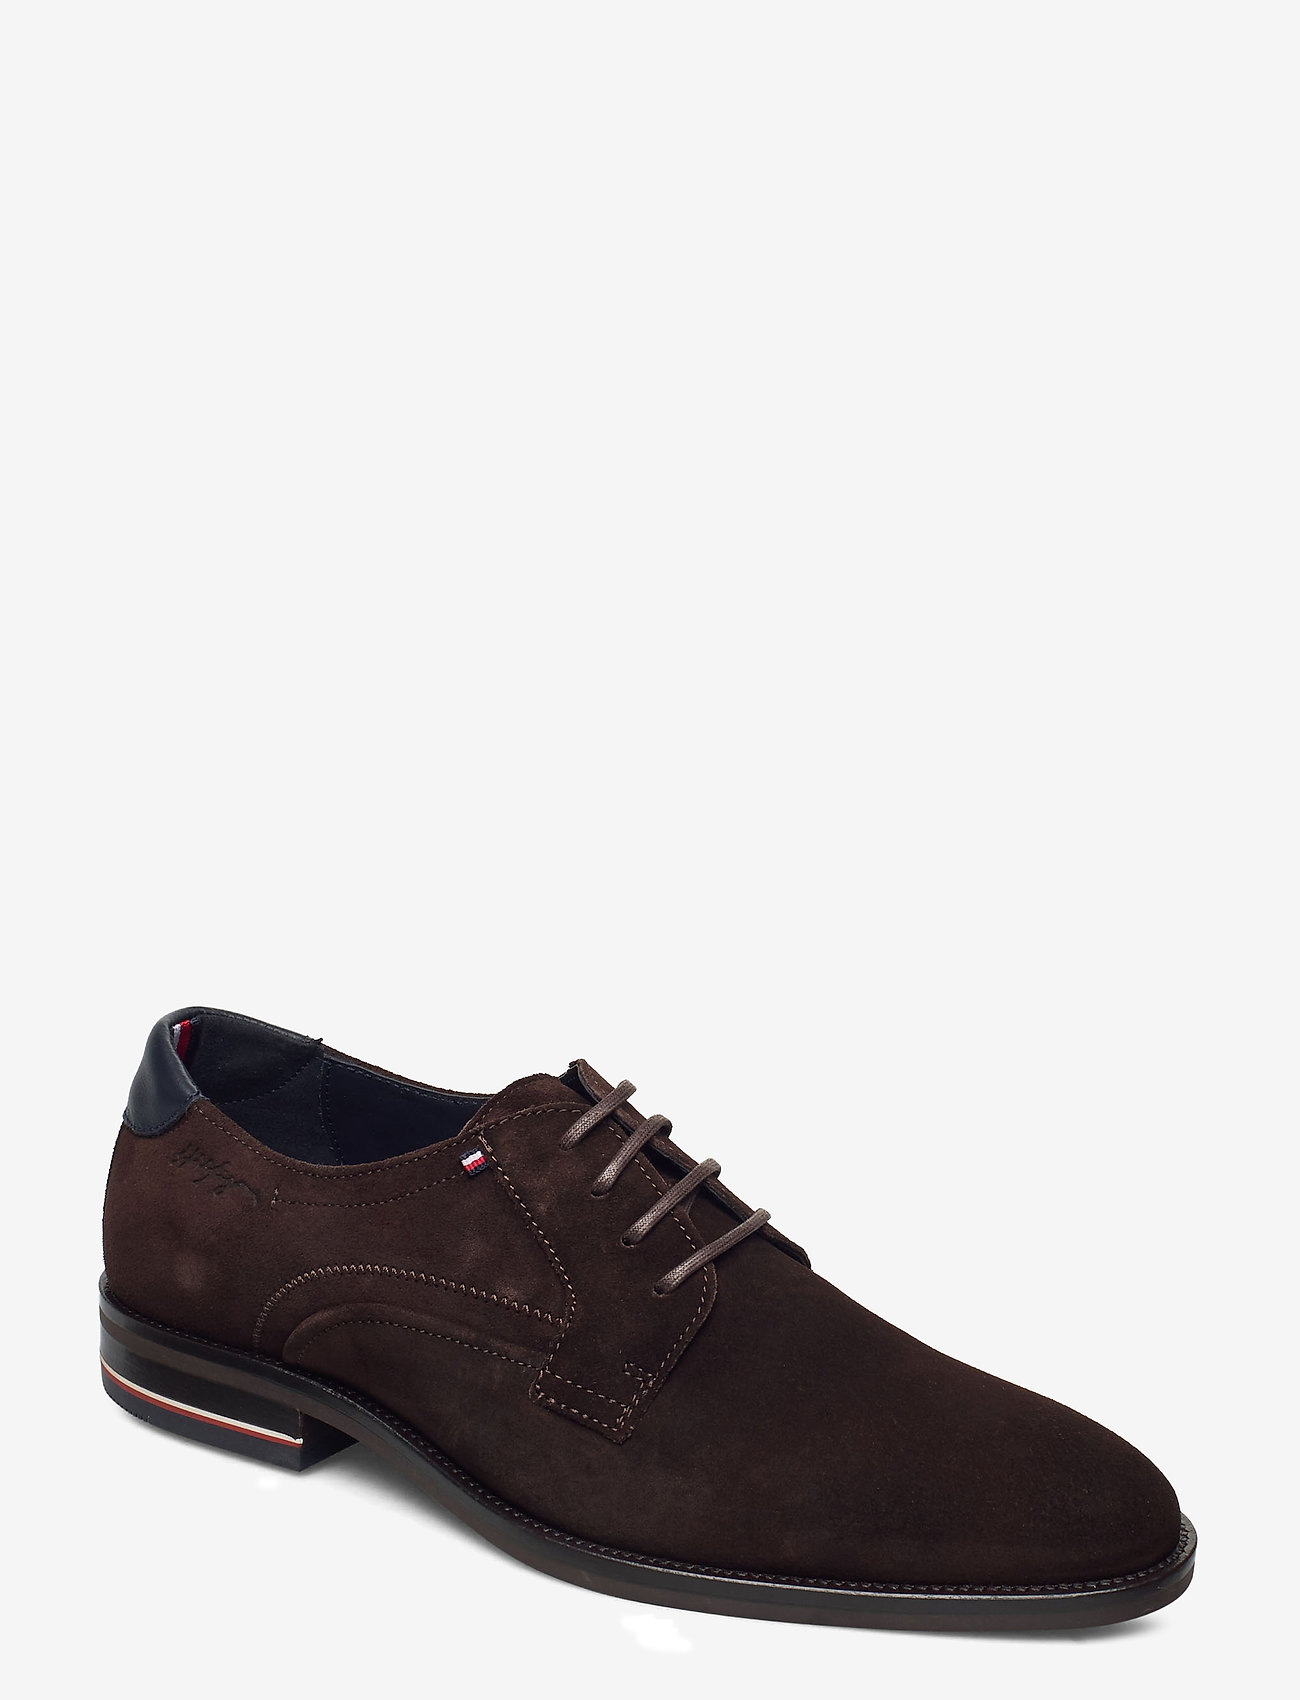 Tommy Hilfiger - SIGNATURE HILFIGER SUEDE SHOE - laced shoes - cocoa - 0